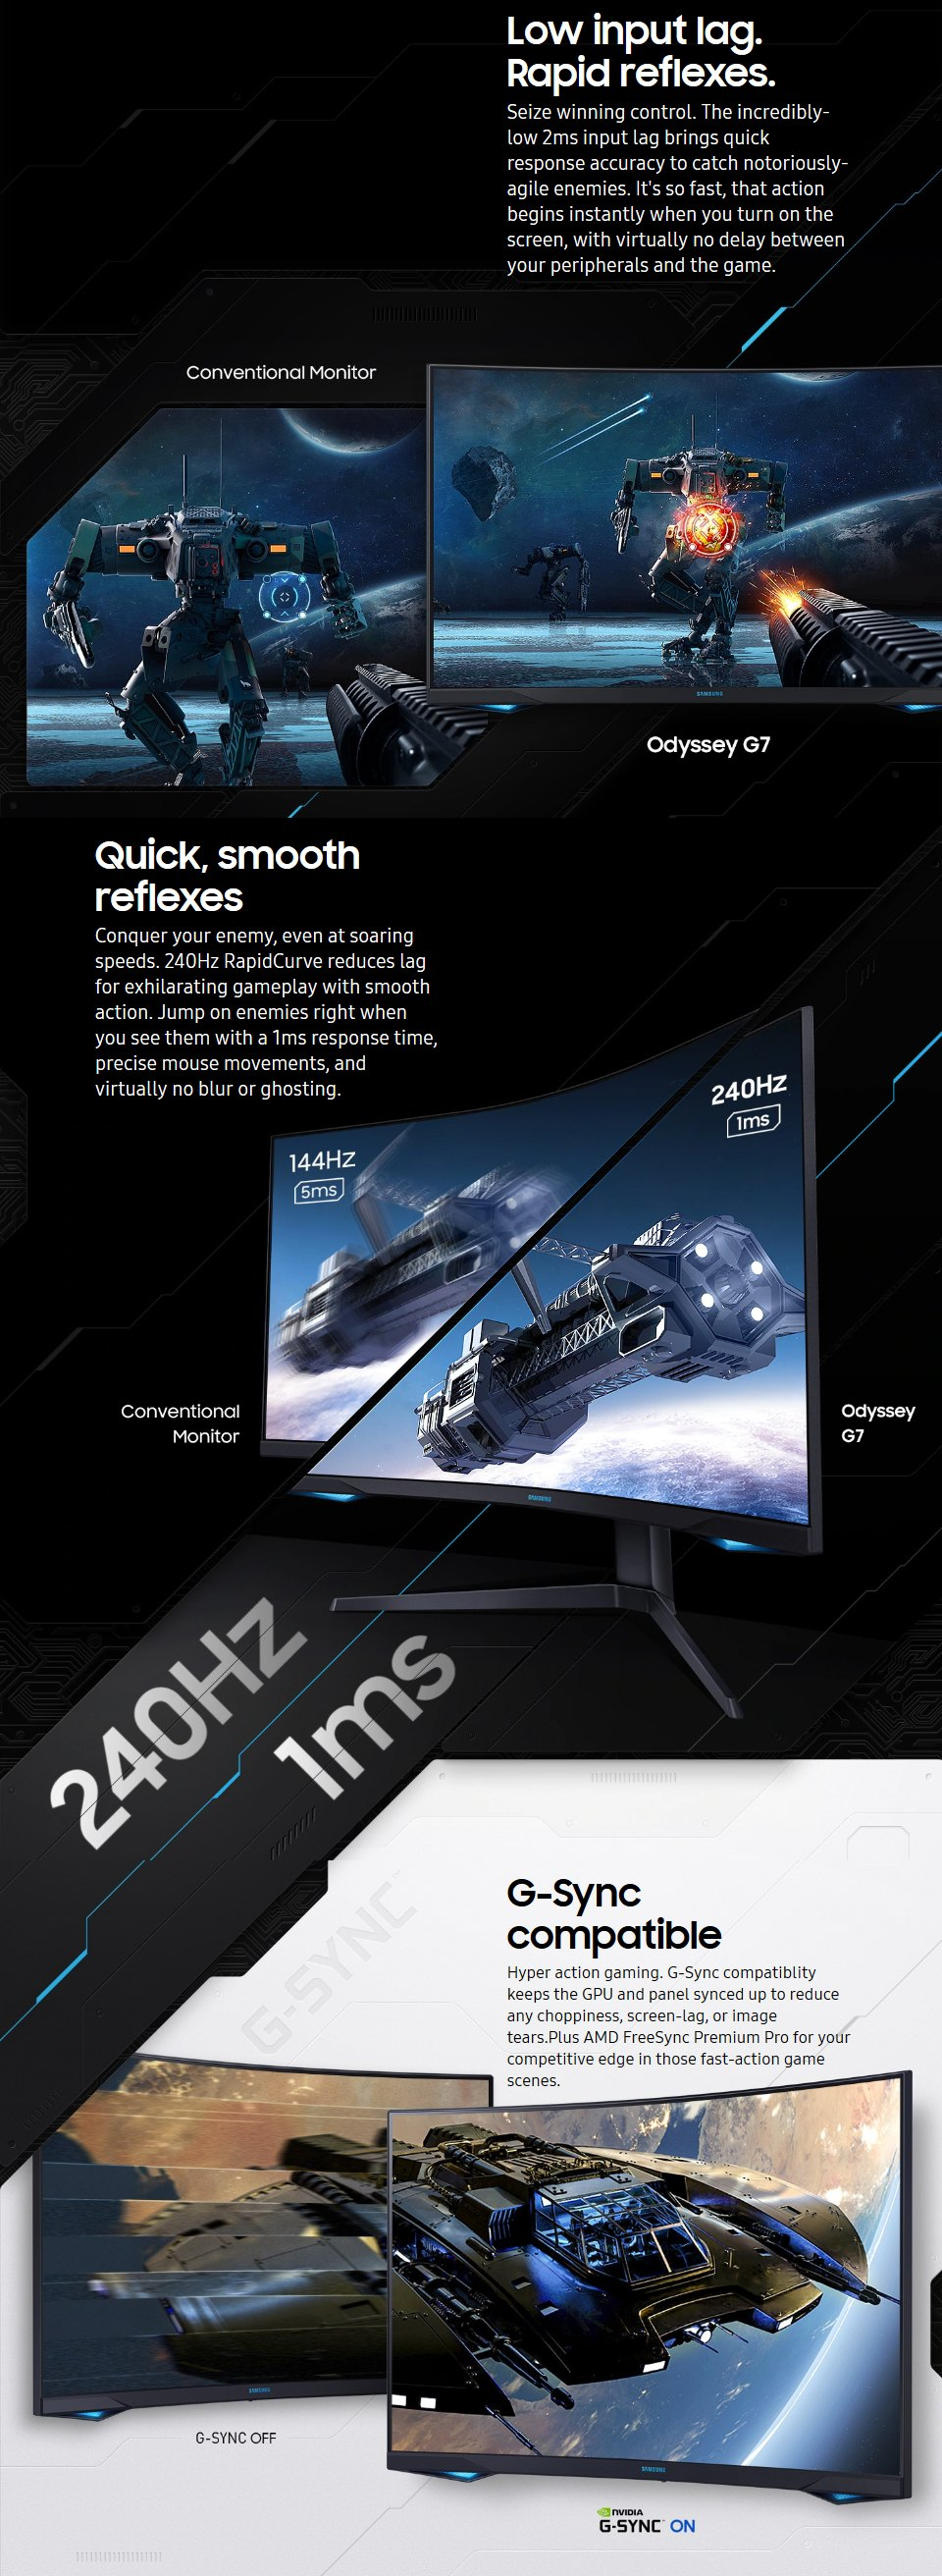 Samsung Odyssey G7 QHD 240hz Freesync QLED Curved 32in Monitor features 3